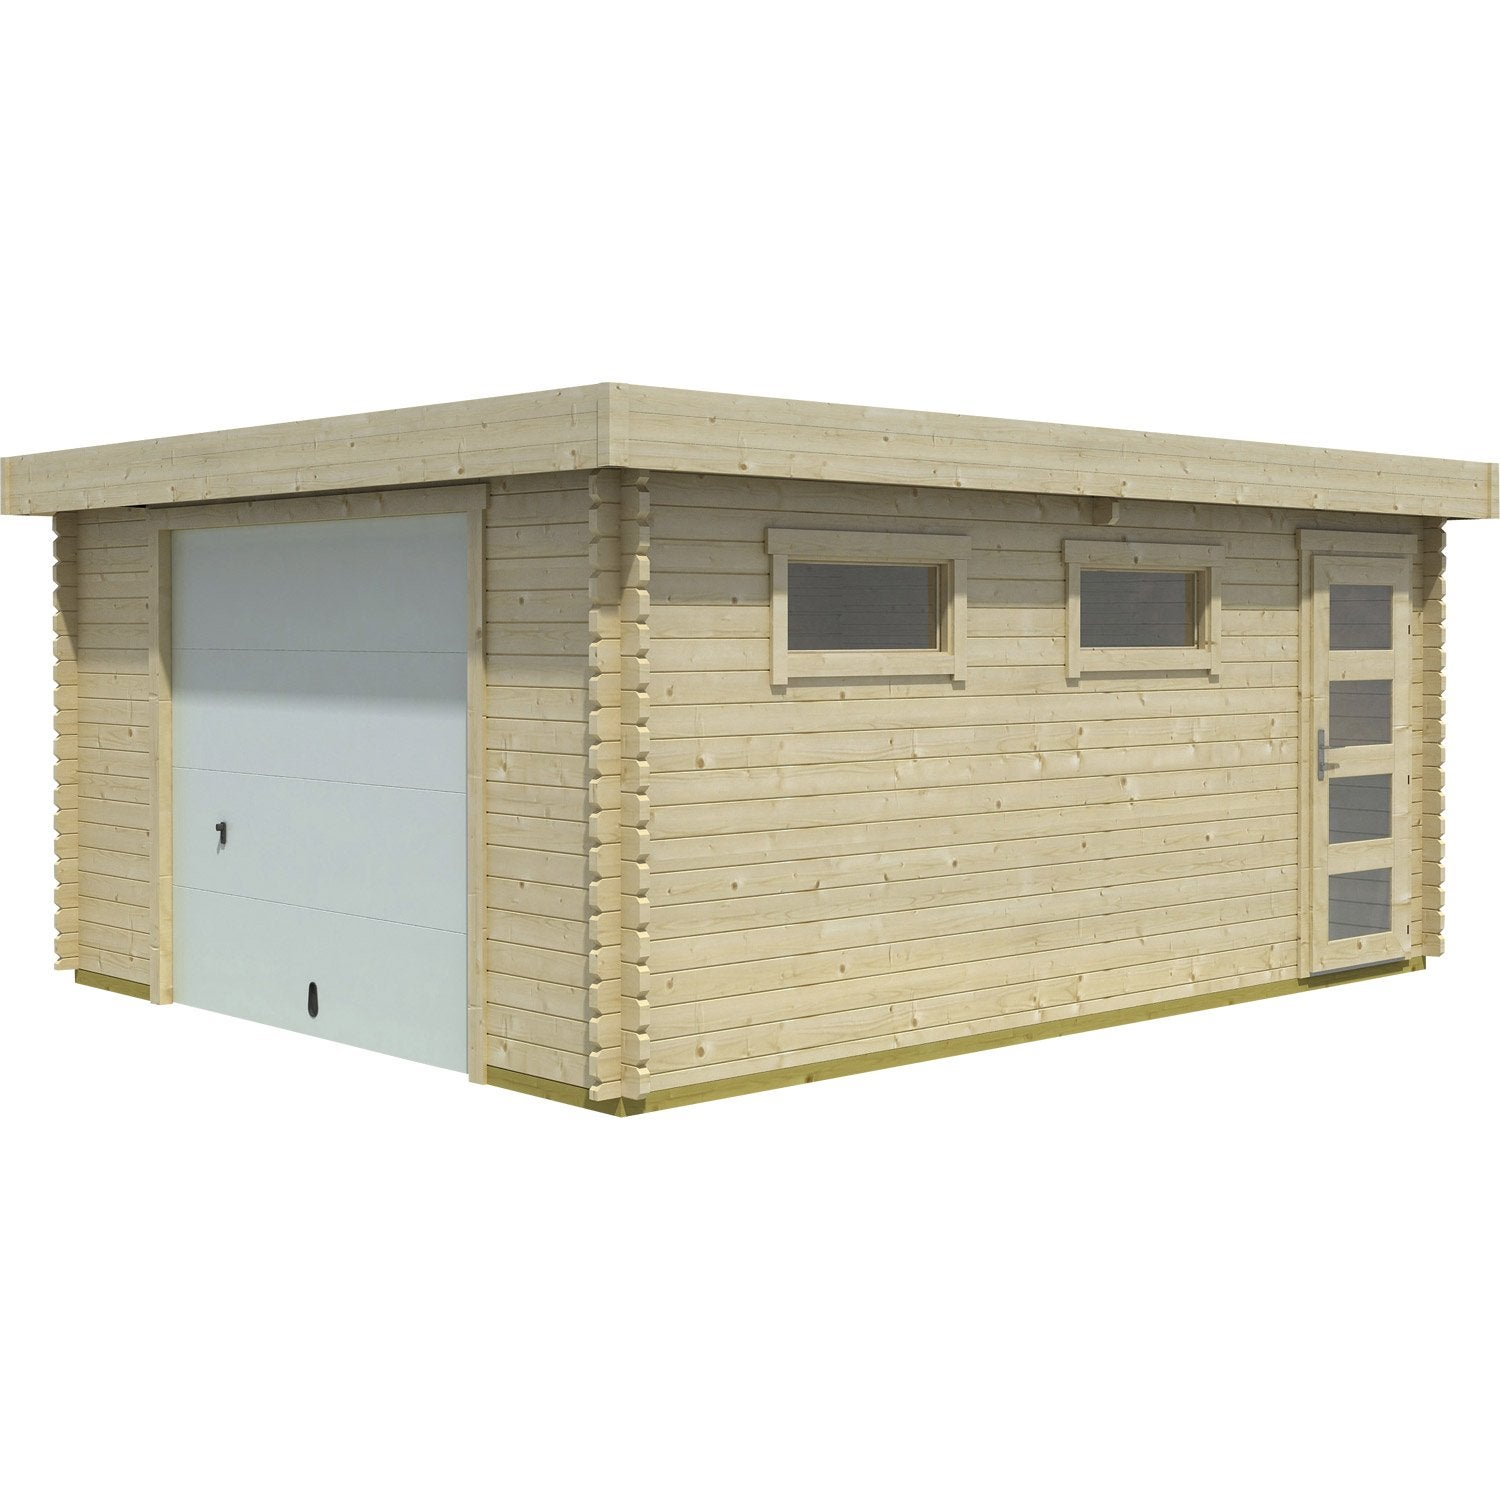 Garage bois narva 1 voiture m leroy merlin - Isolation garage leroy merlin ...